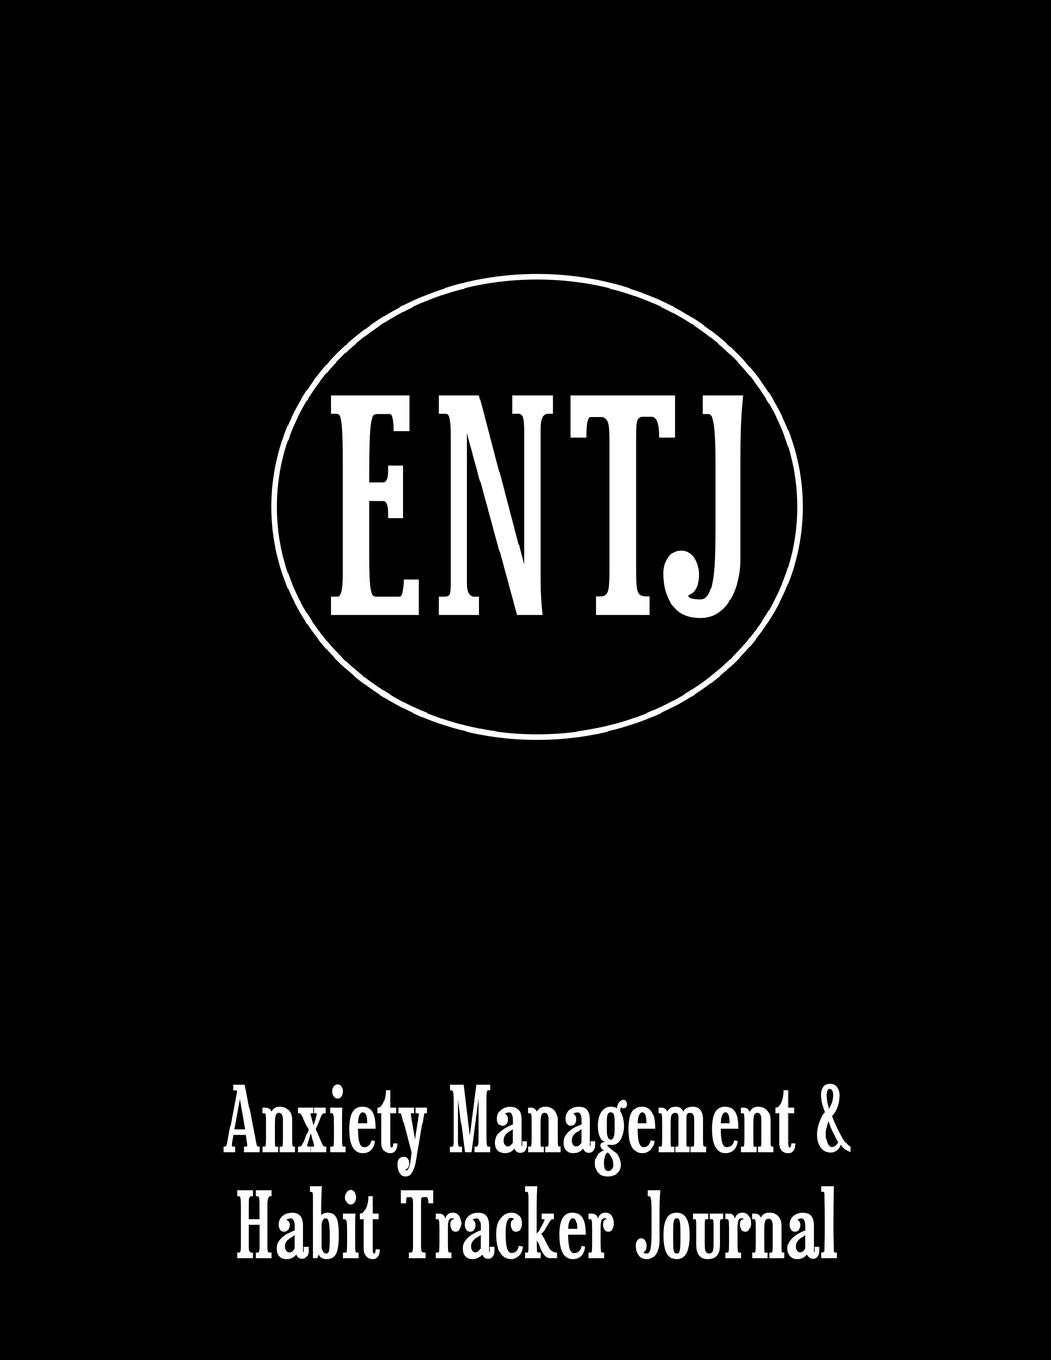 Entj Anxiety Management Habit Tracker Journal For Myers Briggs Personality Julius Dunggat Olivia 9781676298069 Amazon Com Books